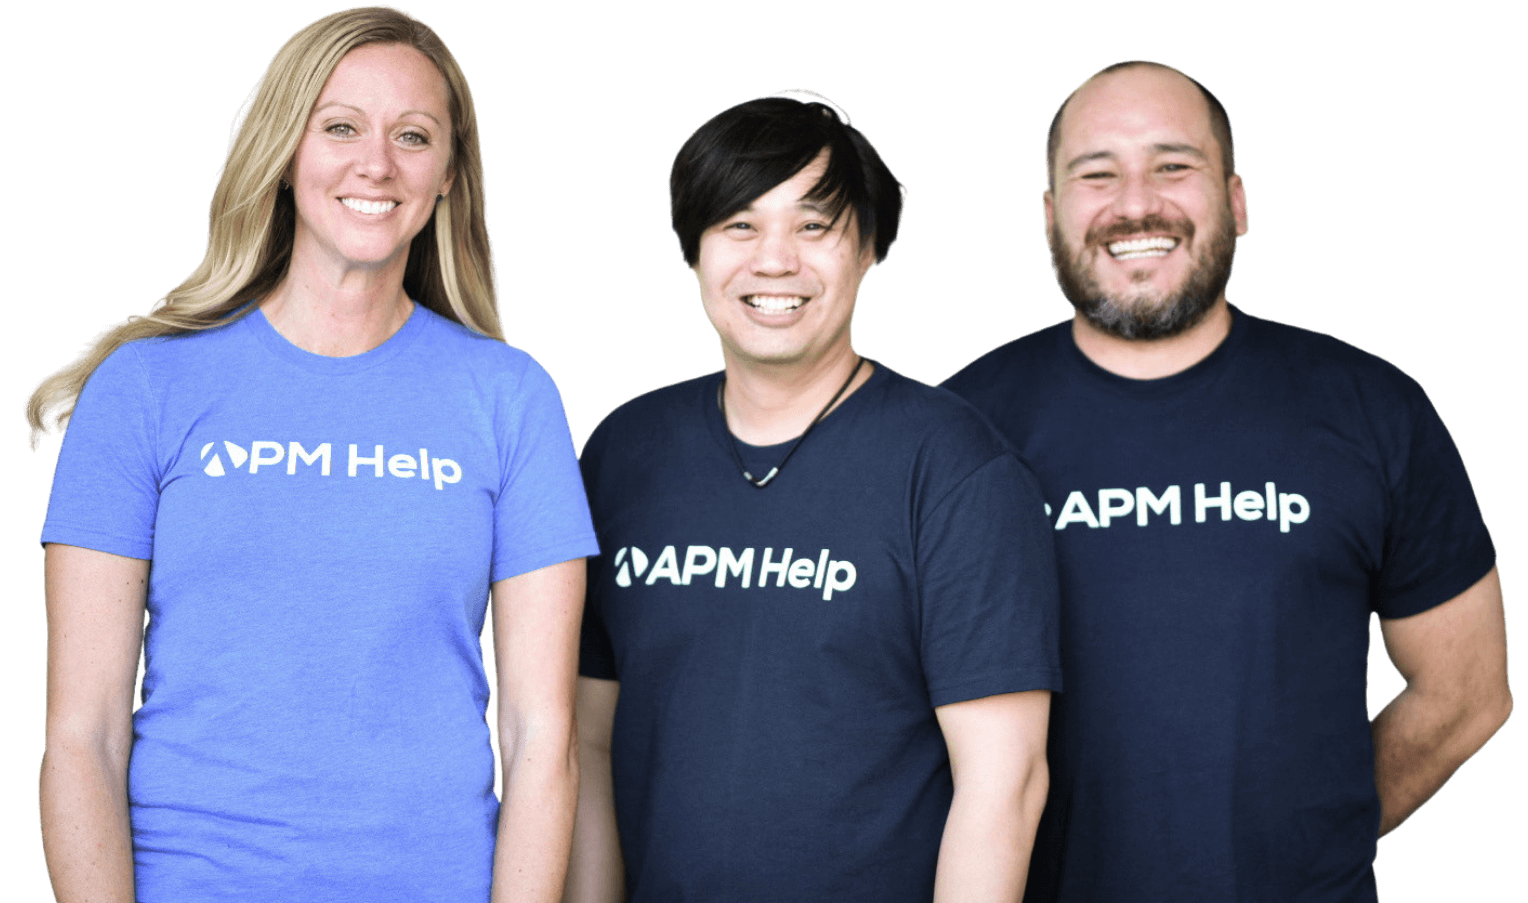 a group of APM Help employees smiling